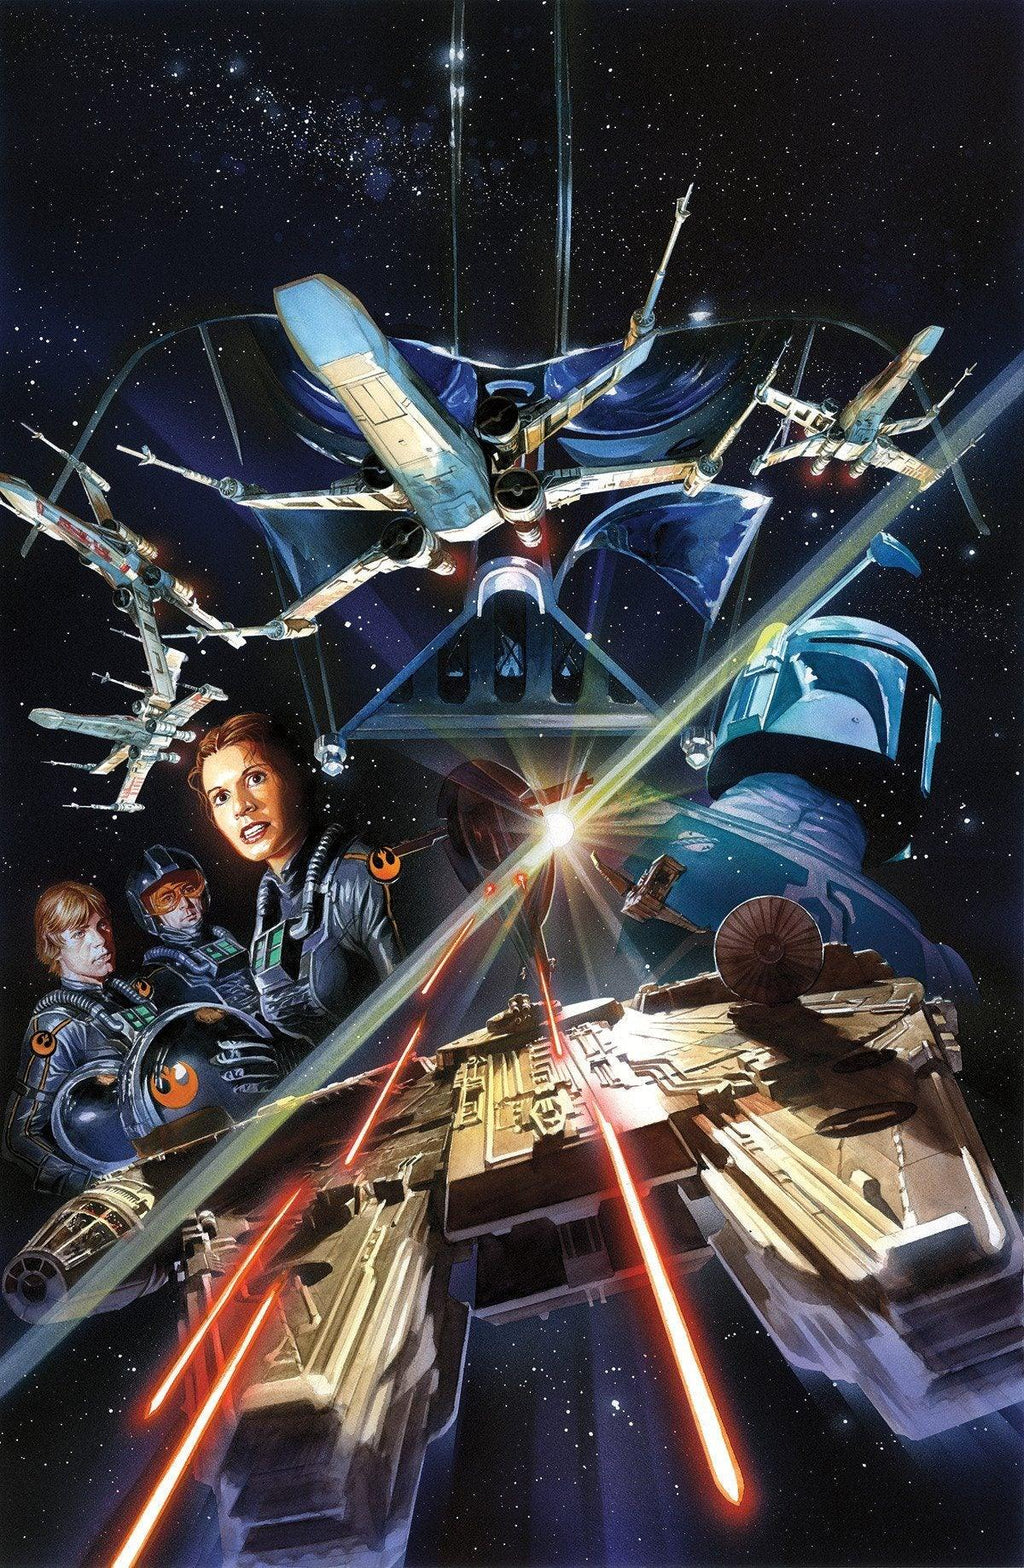 STAR WARS #2 Giclée on Paper Alex Ross